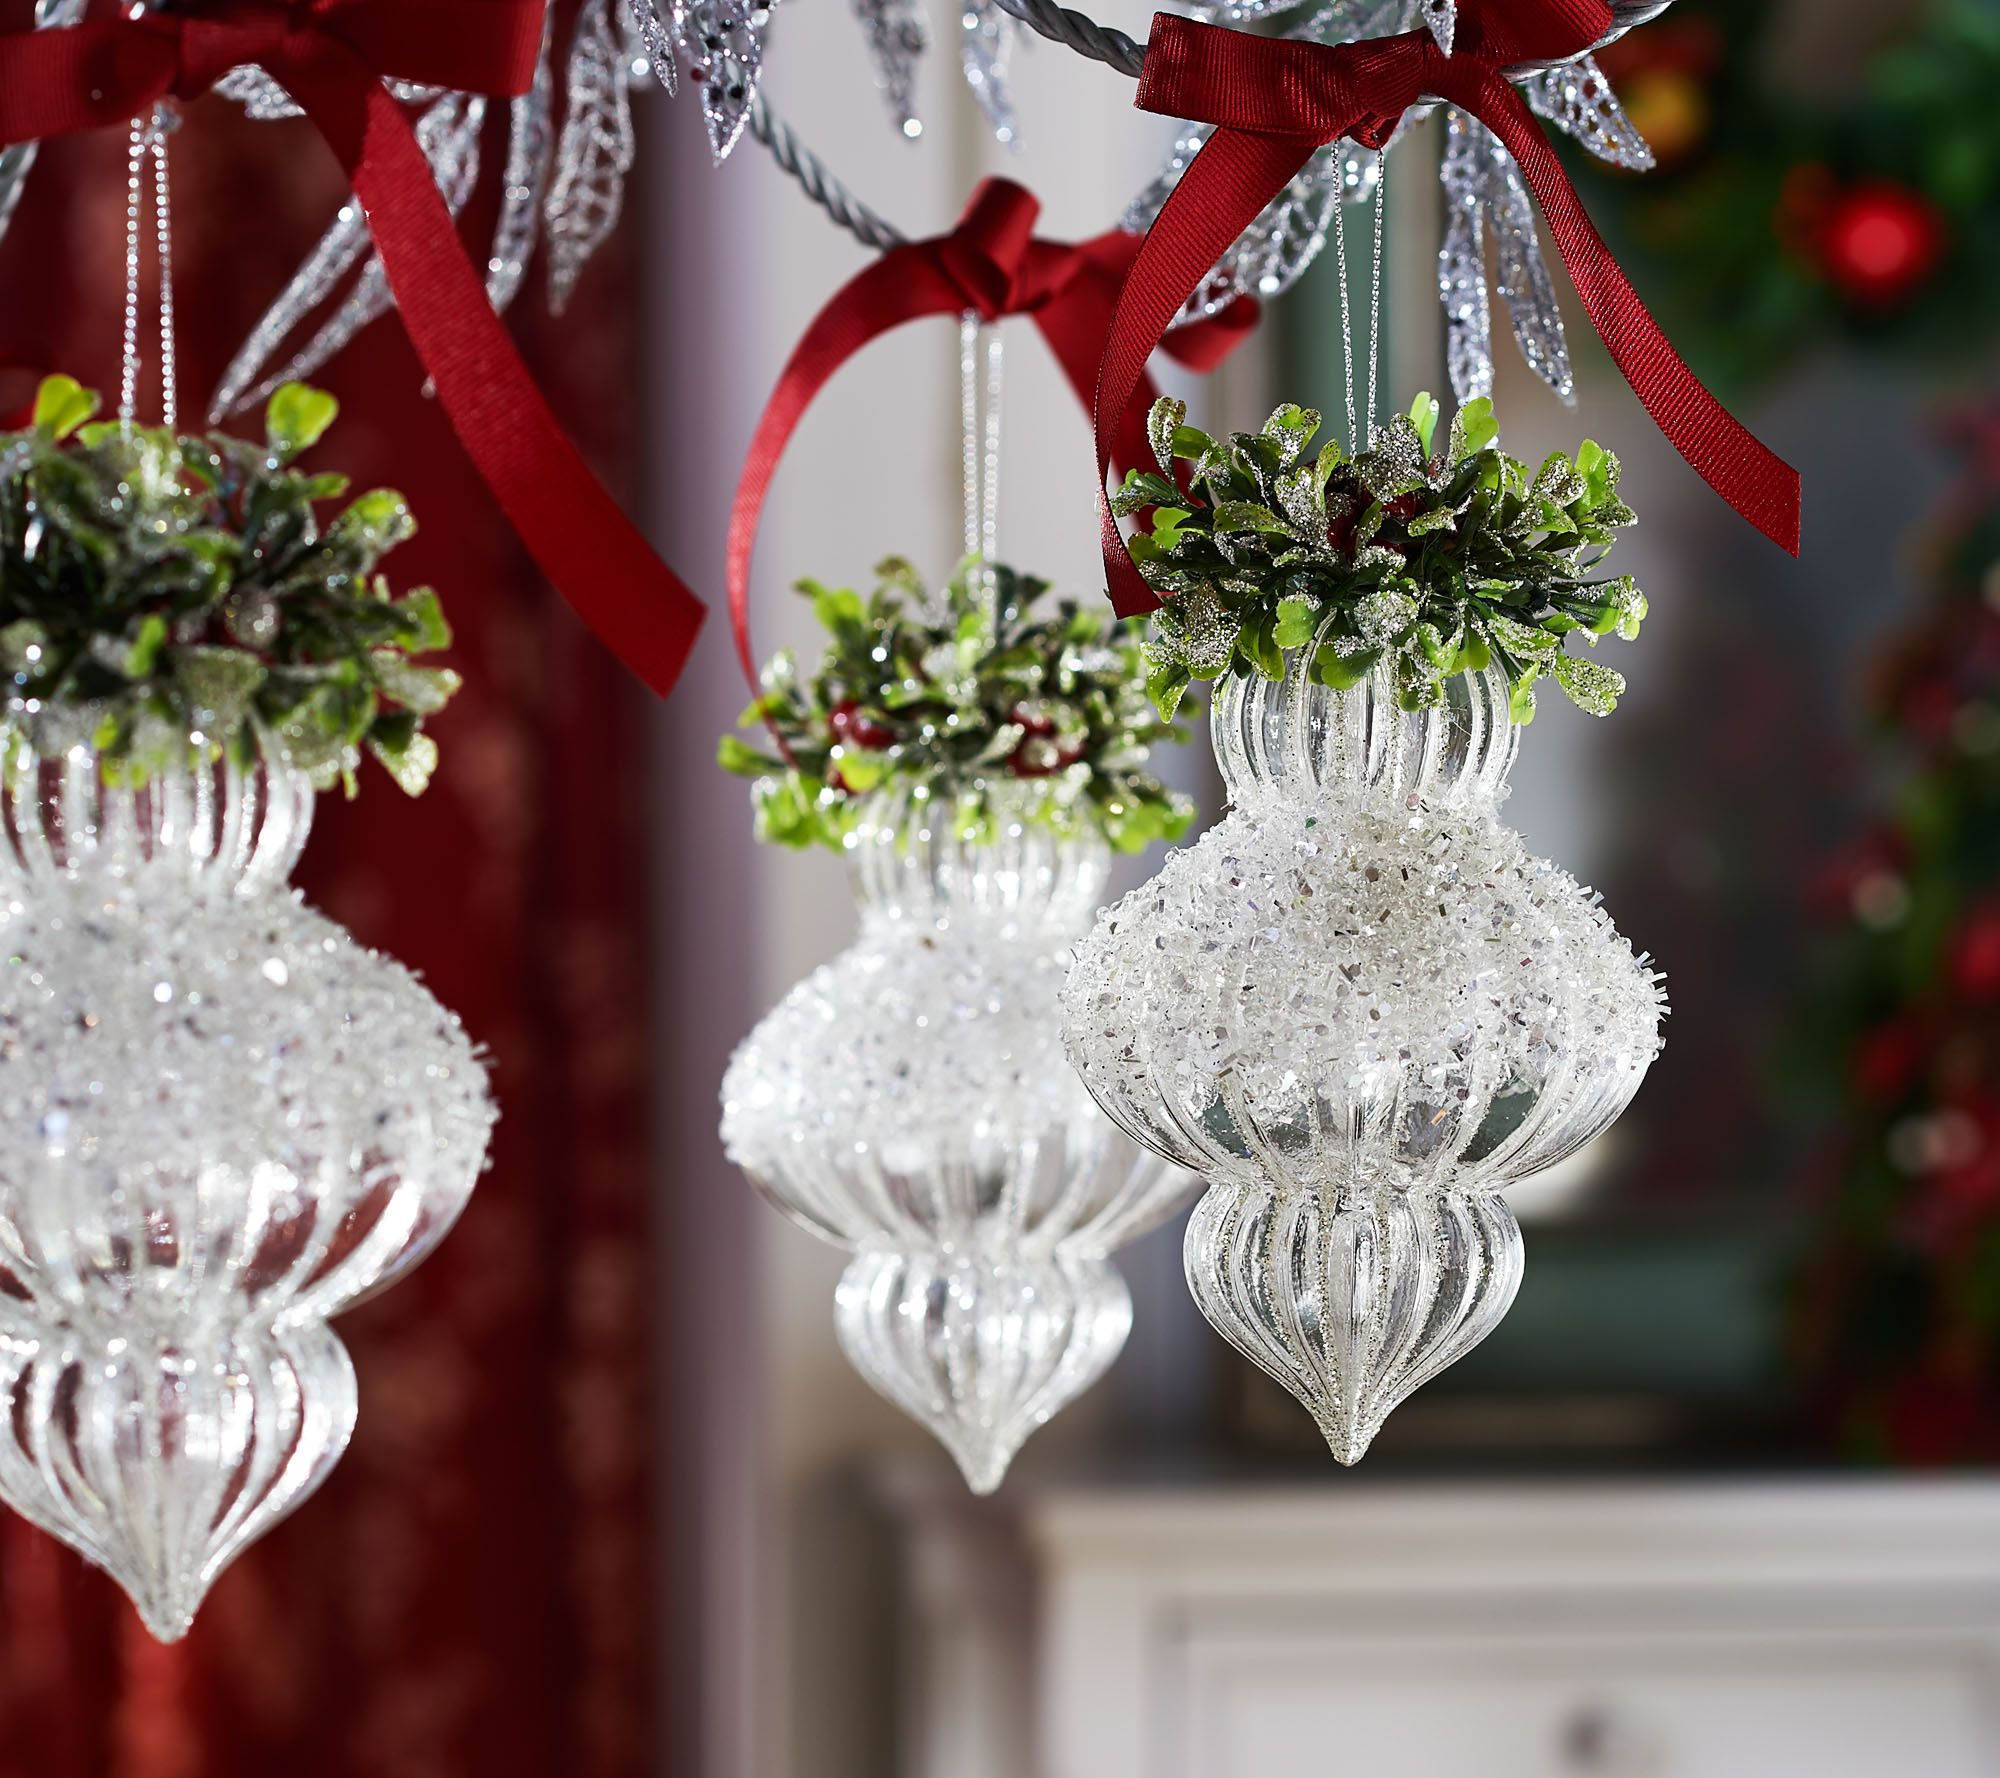 Set Of 5 Shimmering Iced Glass Ornaments By Valerie Qvc Com Christmas Display Valerie Parr Hill Christmas Glass Ornaments